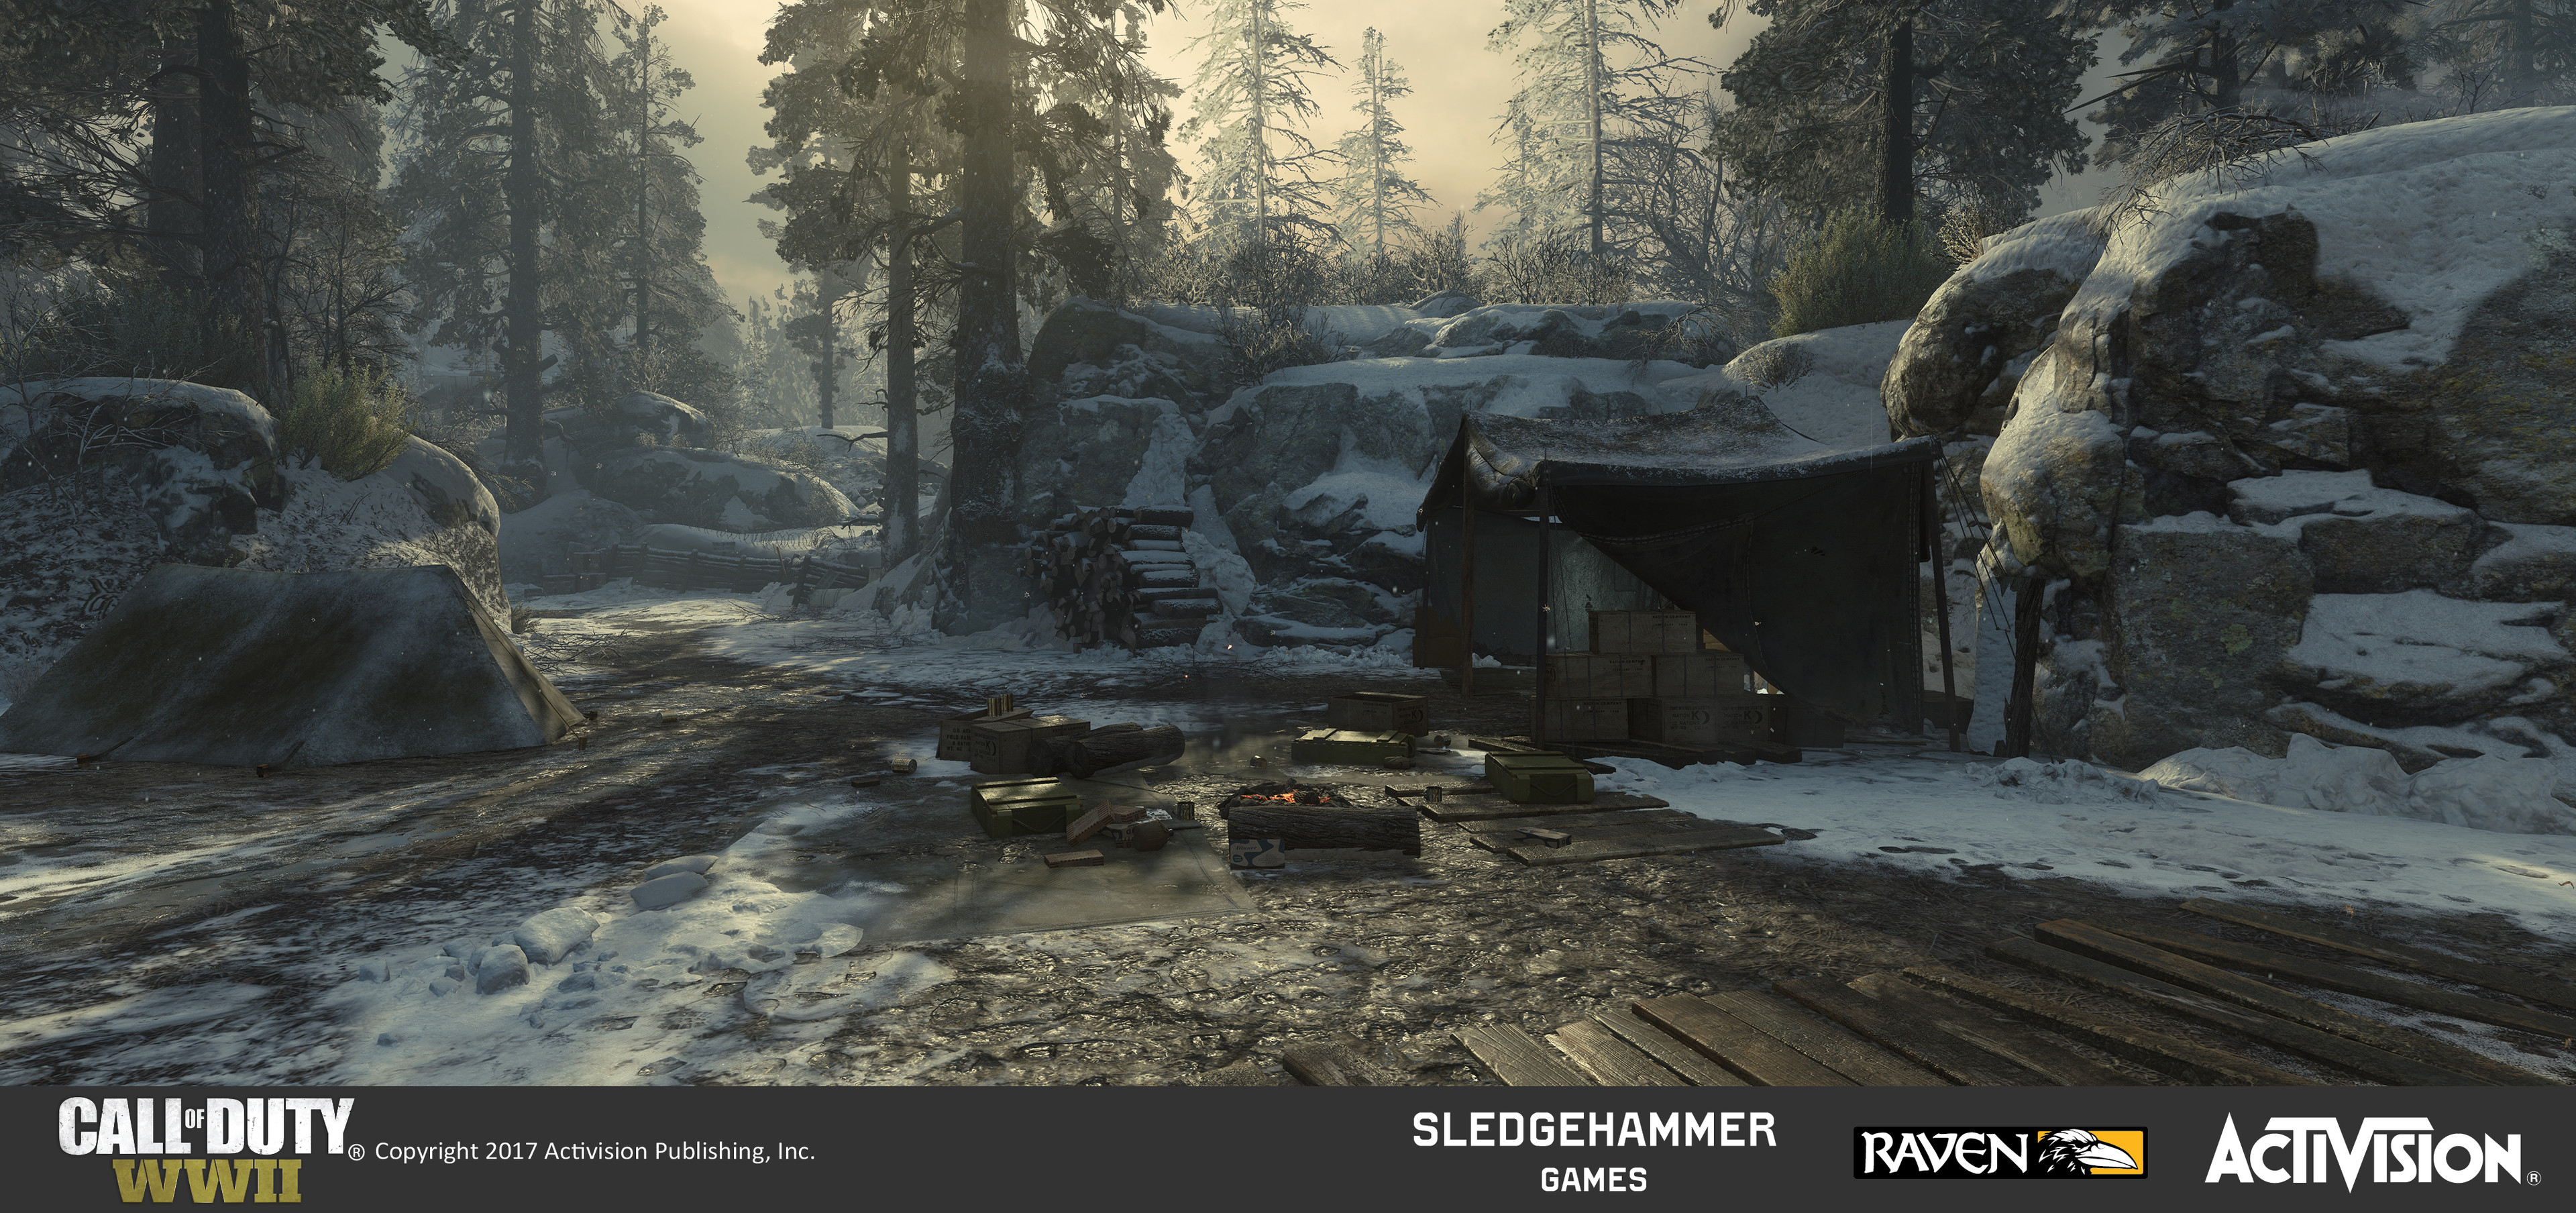 US Forward Campsite: Worked on terrain treatment and set dress of the campsite, which is featured in the into cinematic of the map (U.S. side) and serves as the first spawn point of that team.